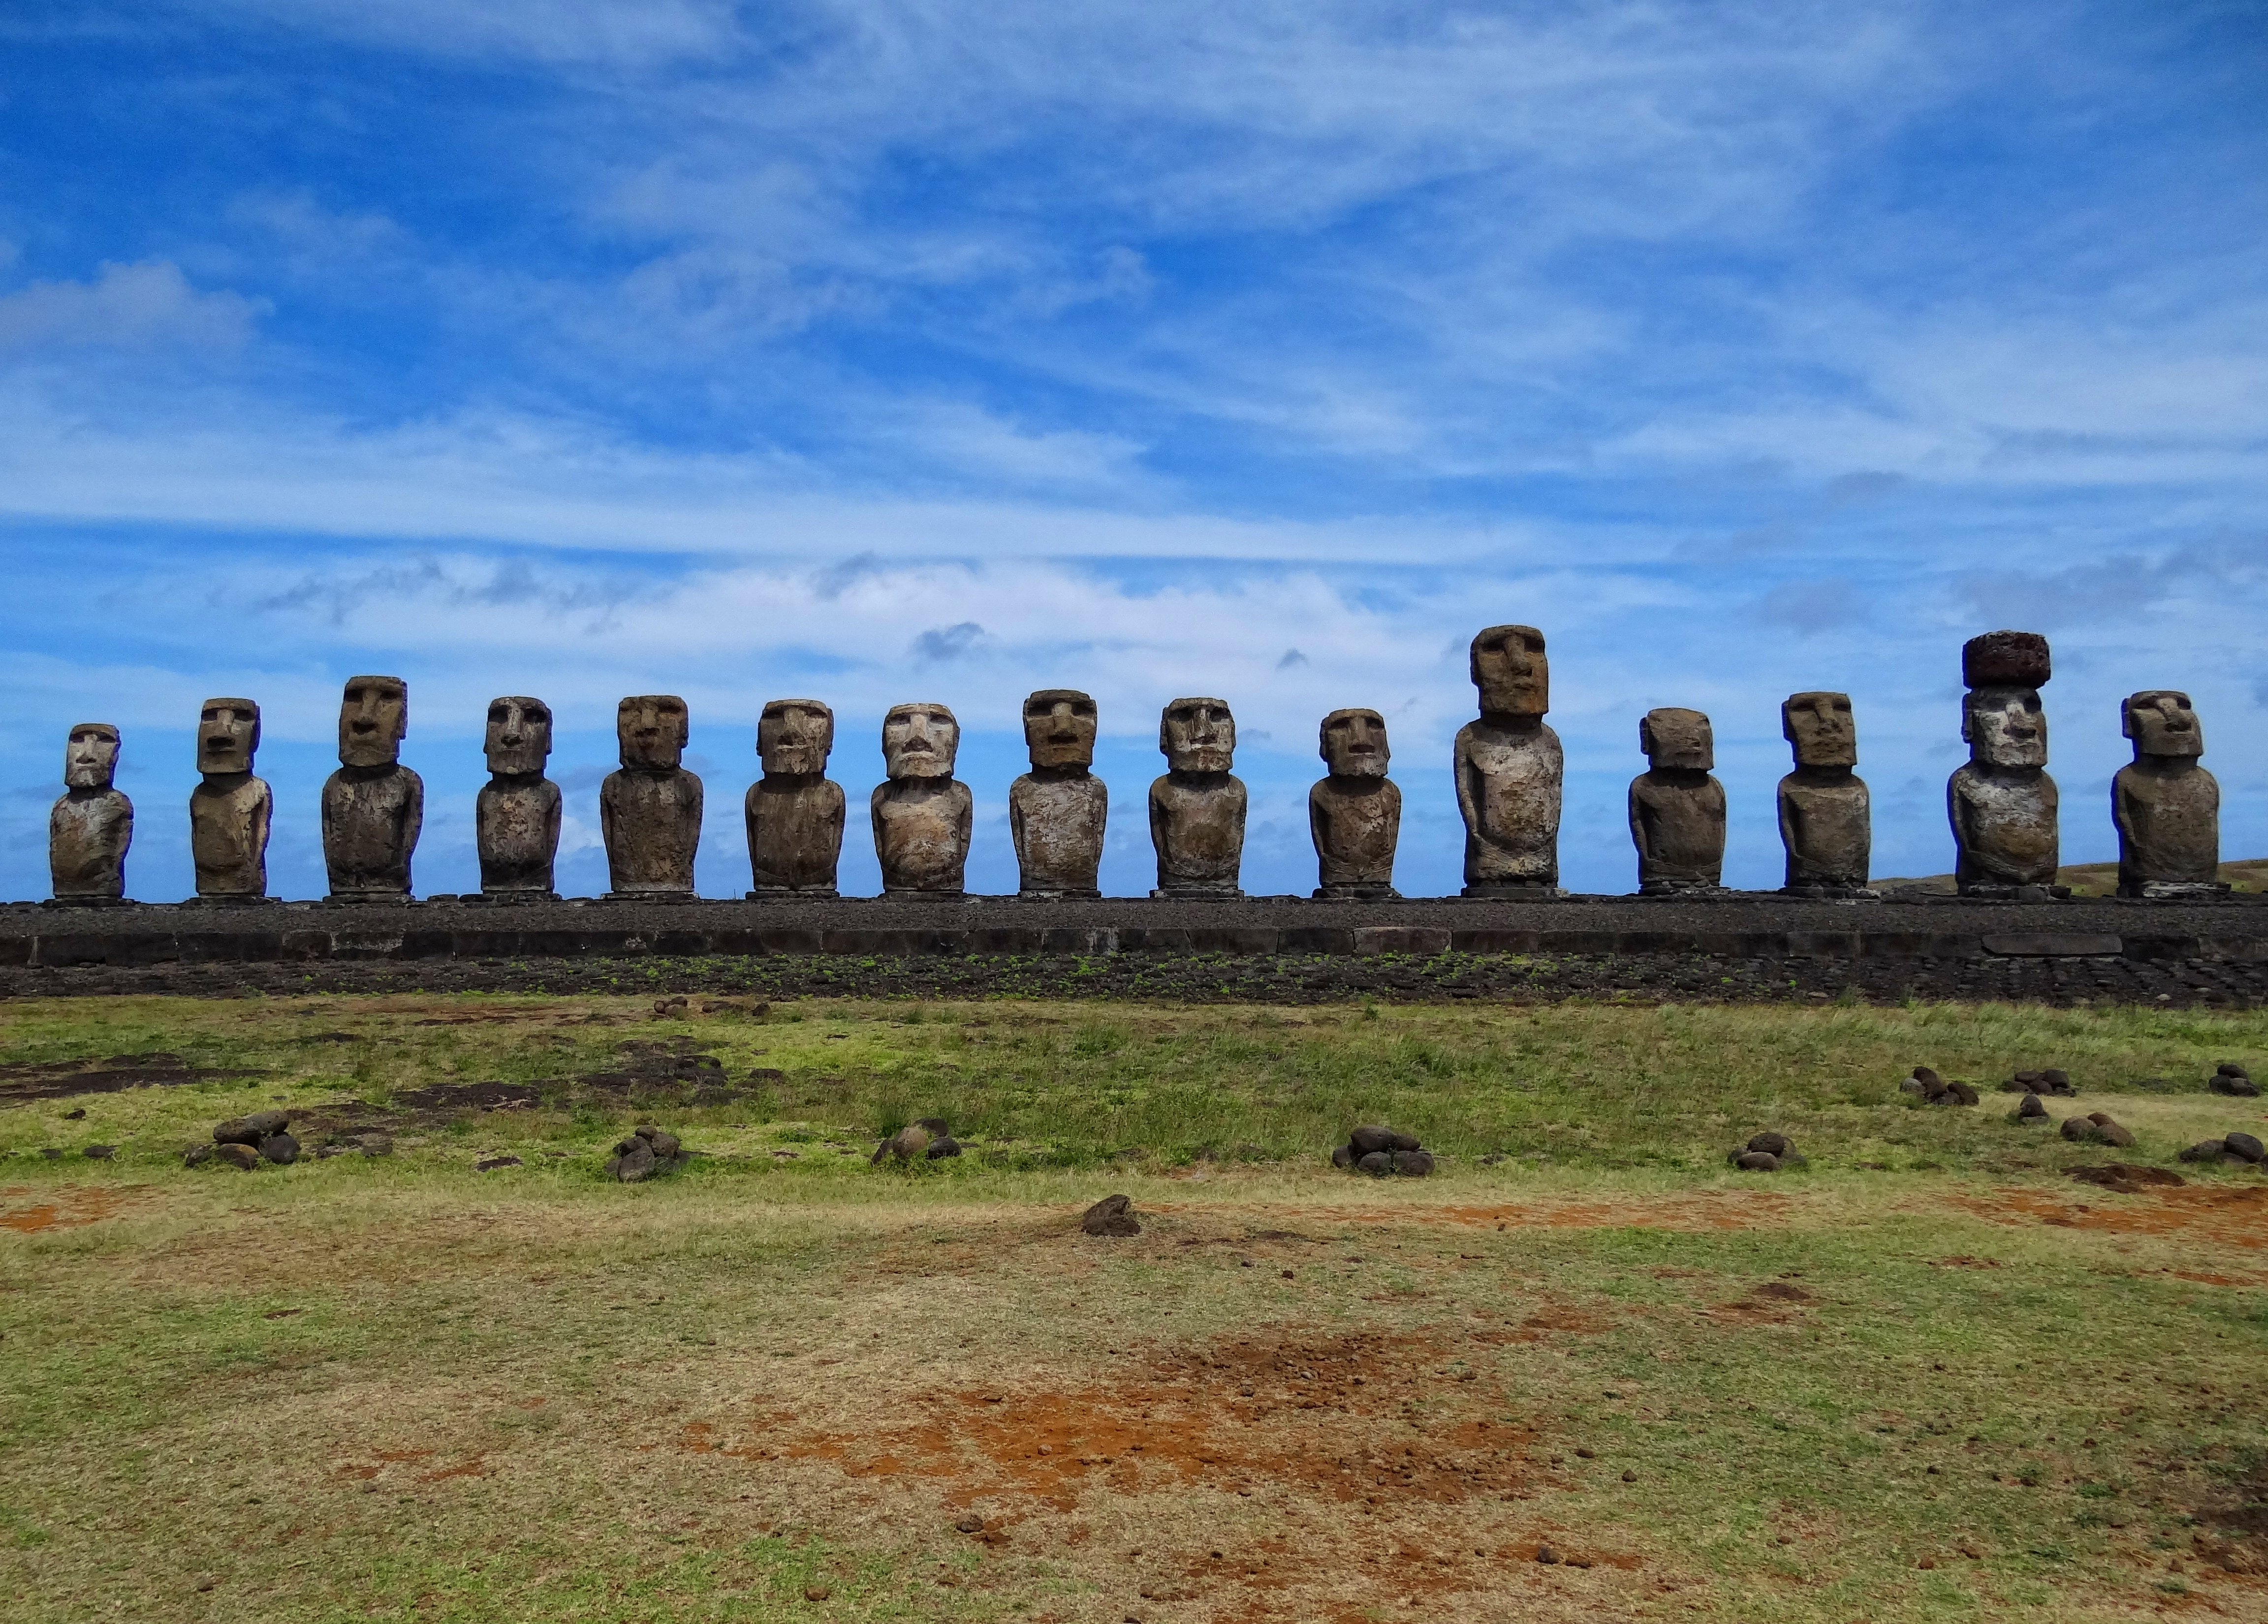 New researchs reveals that we can learn a lot from the rise and fall of the population on Rapa Nui.